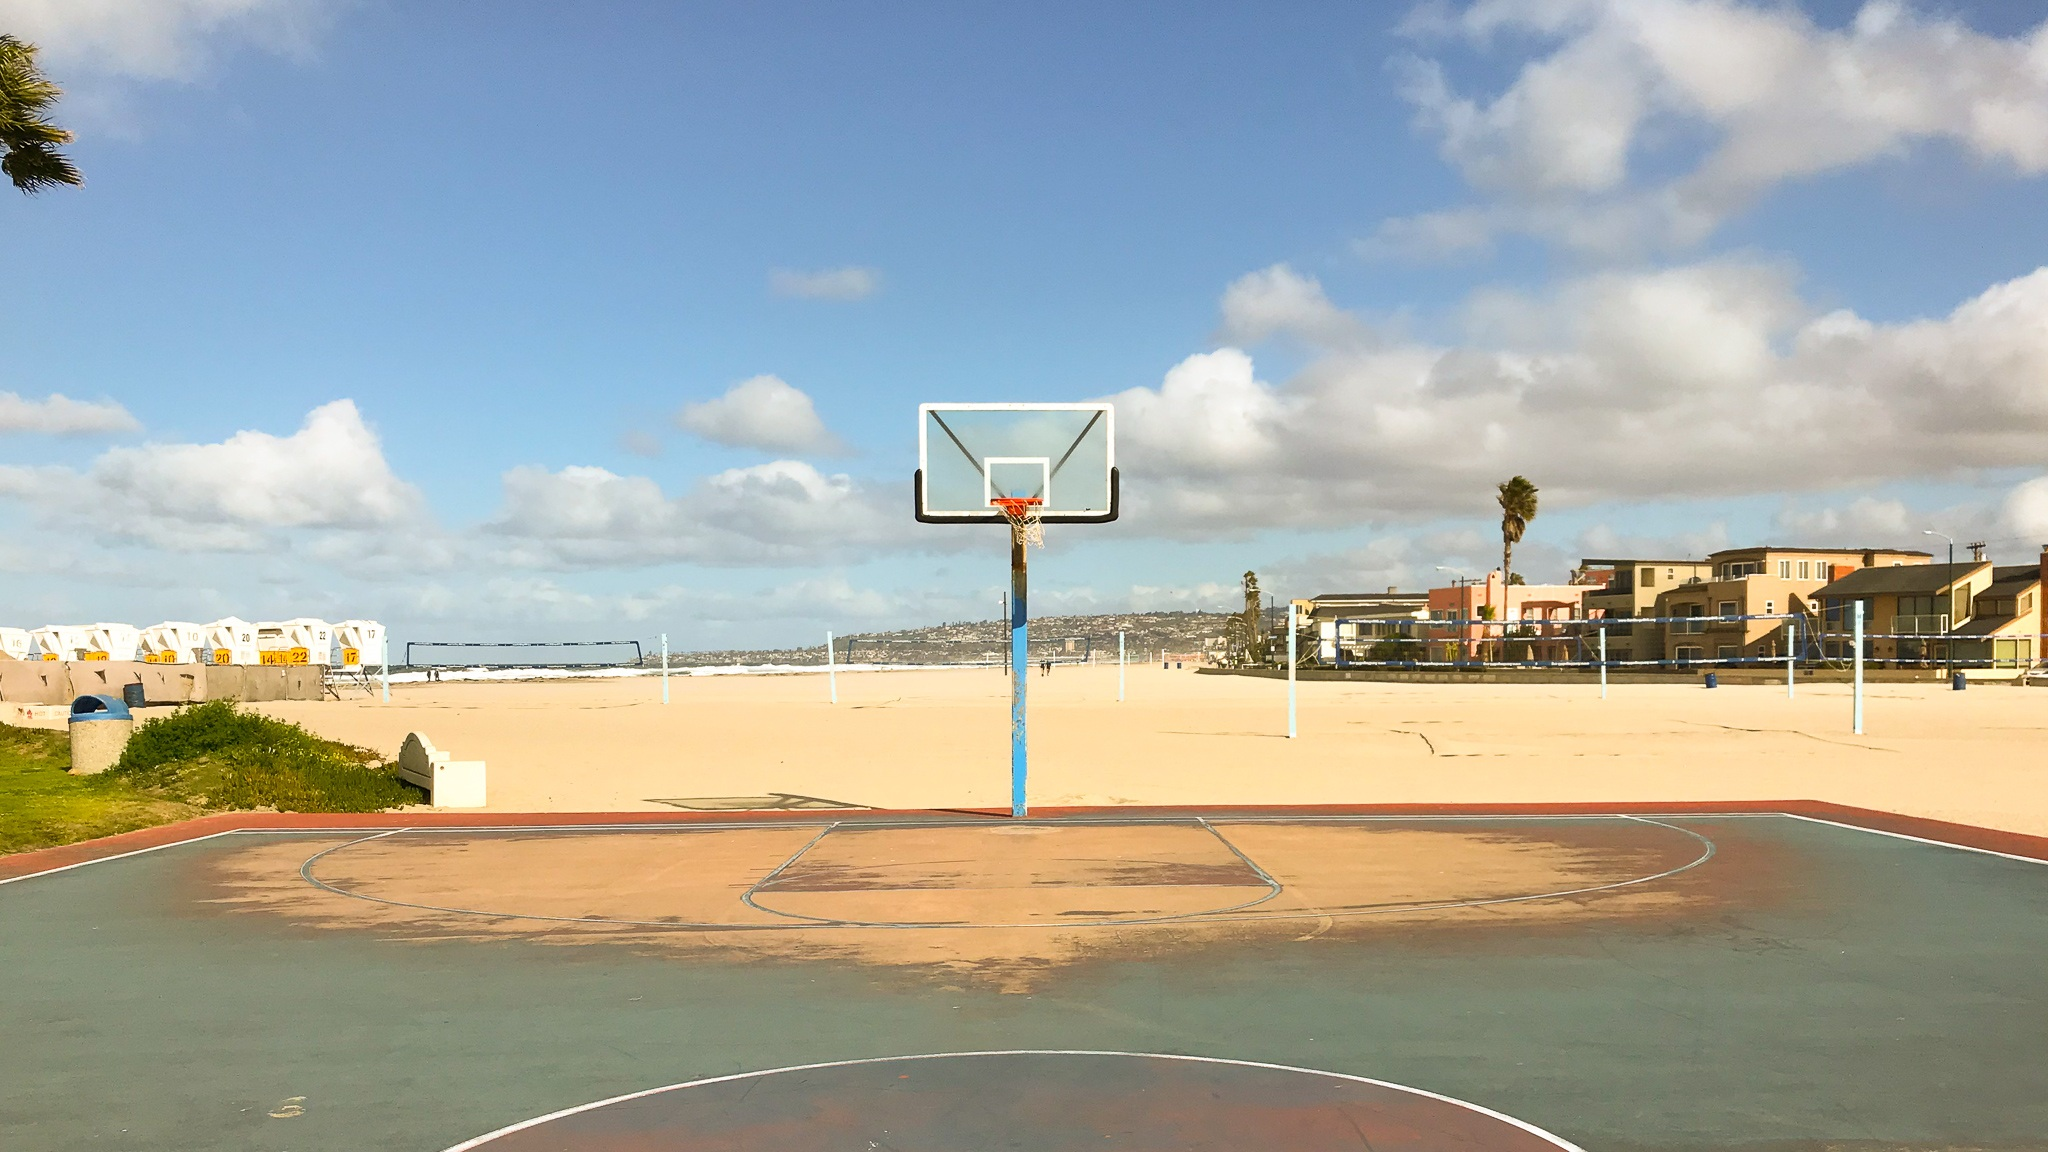 Beach+basketball+courts+in+San+Diego